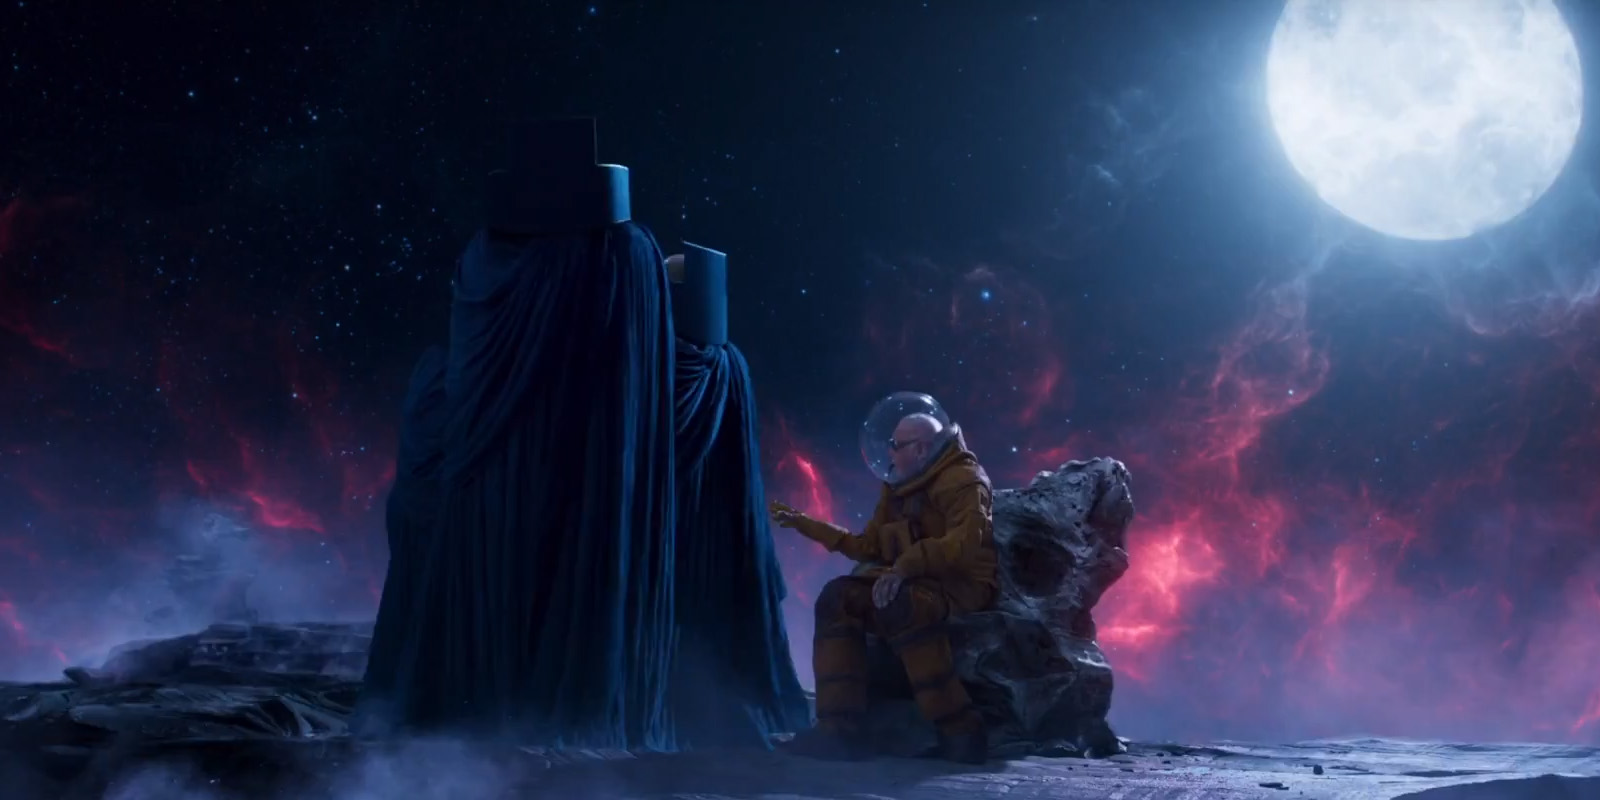 6. Guardians Of The Galaxy Vol. 2. The movie has five credit scenes! The funniest, however, is the one including Stan Lee. Stan is seen telling stories to the Watchers, only for them to turn away as he keeps on with his incredible exploits.